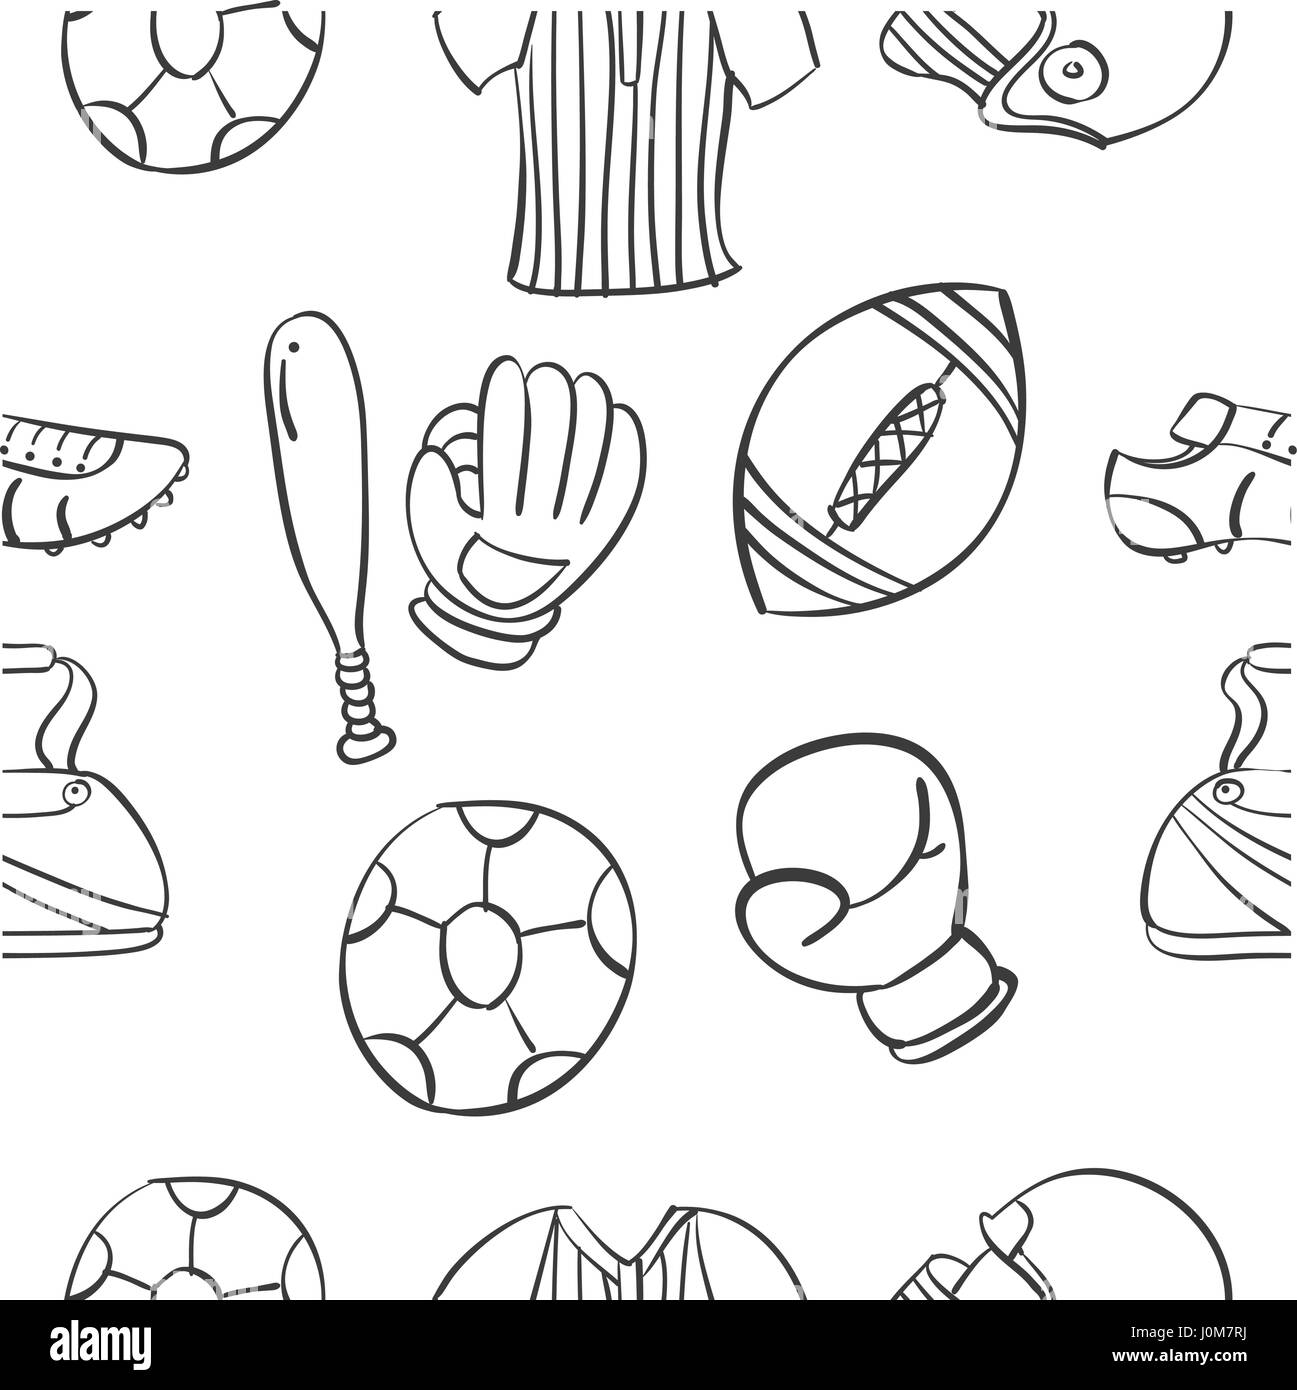 Vector ilustration sport equipment doodles - Stock Image